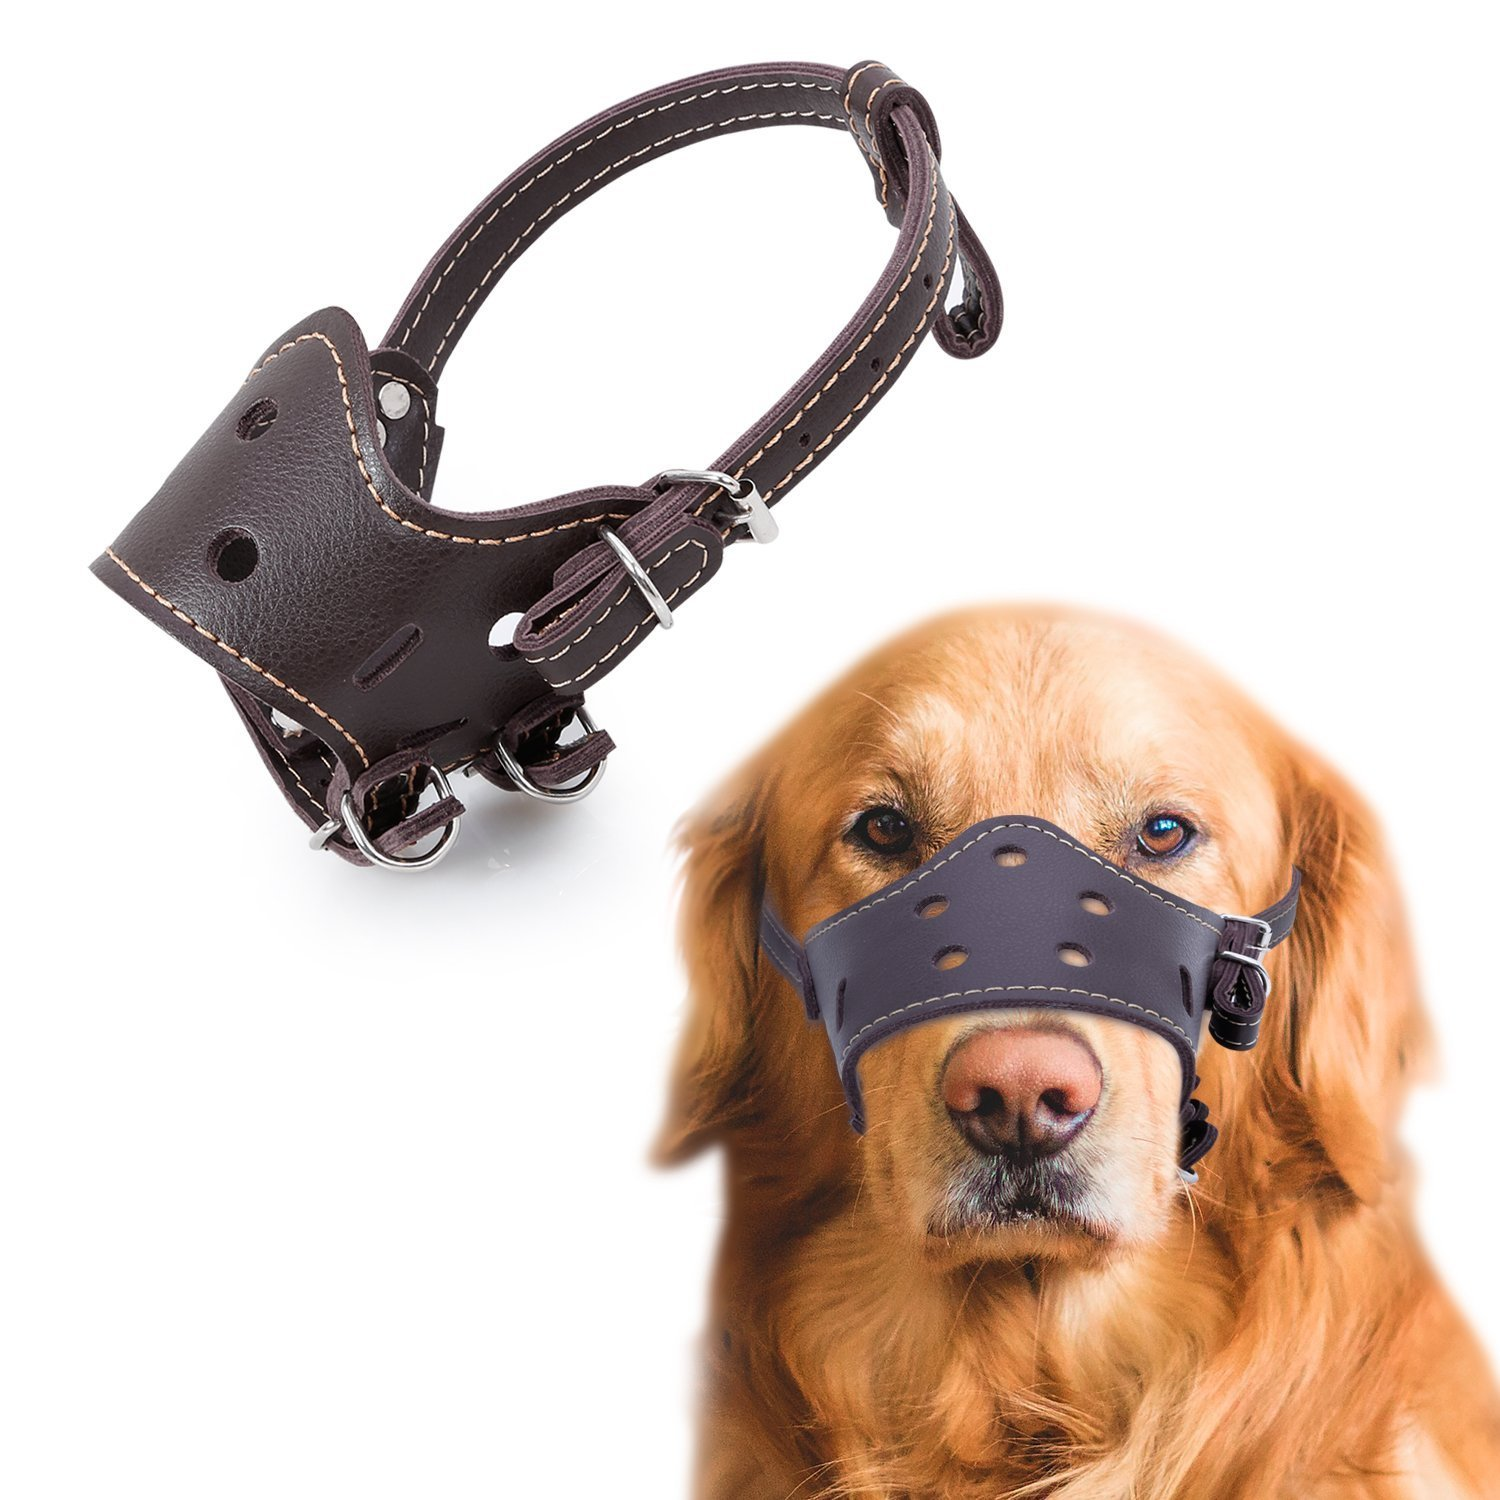 Adjustable Leather Dog Muzzle Breathable Safety Pet Puppy Muzzles Mask for Biting and Barking, Brown M